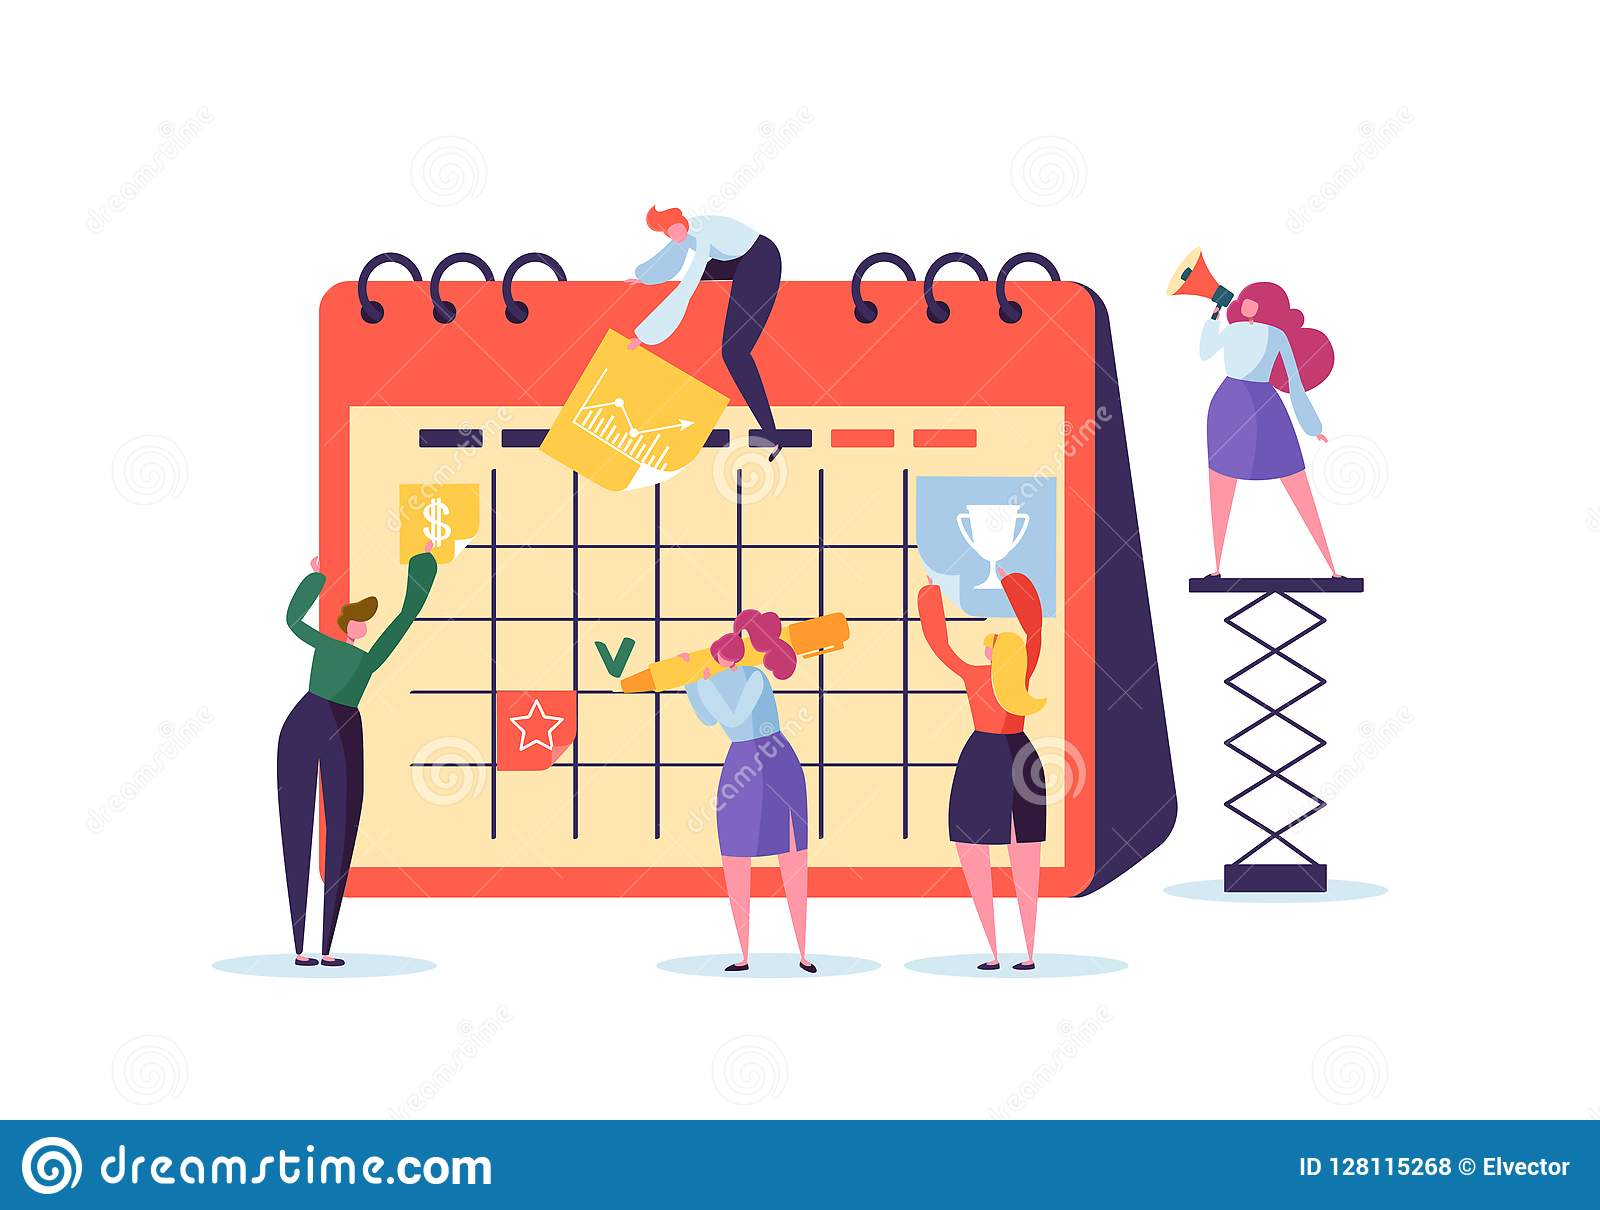 Planning Schedule Concept with Business Characters Working with Planner. Team Work Together. Flat People Teamworking